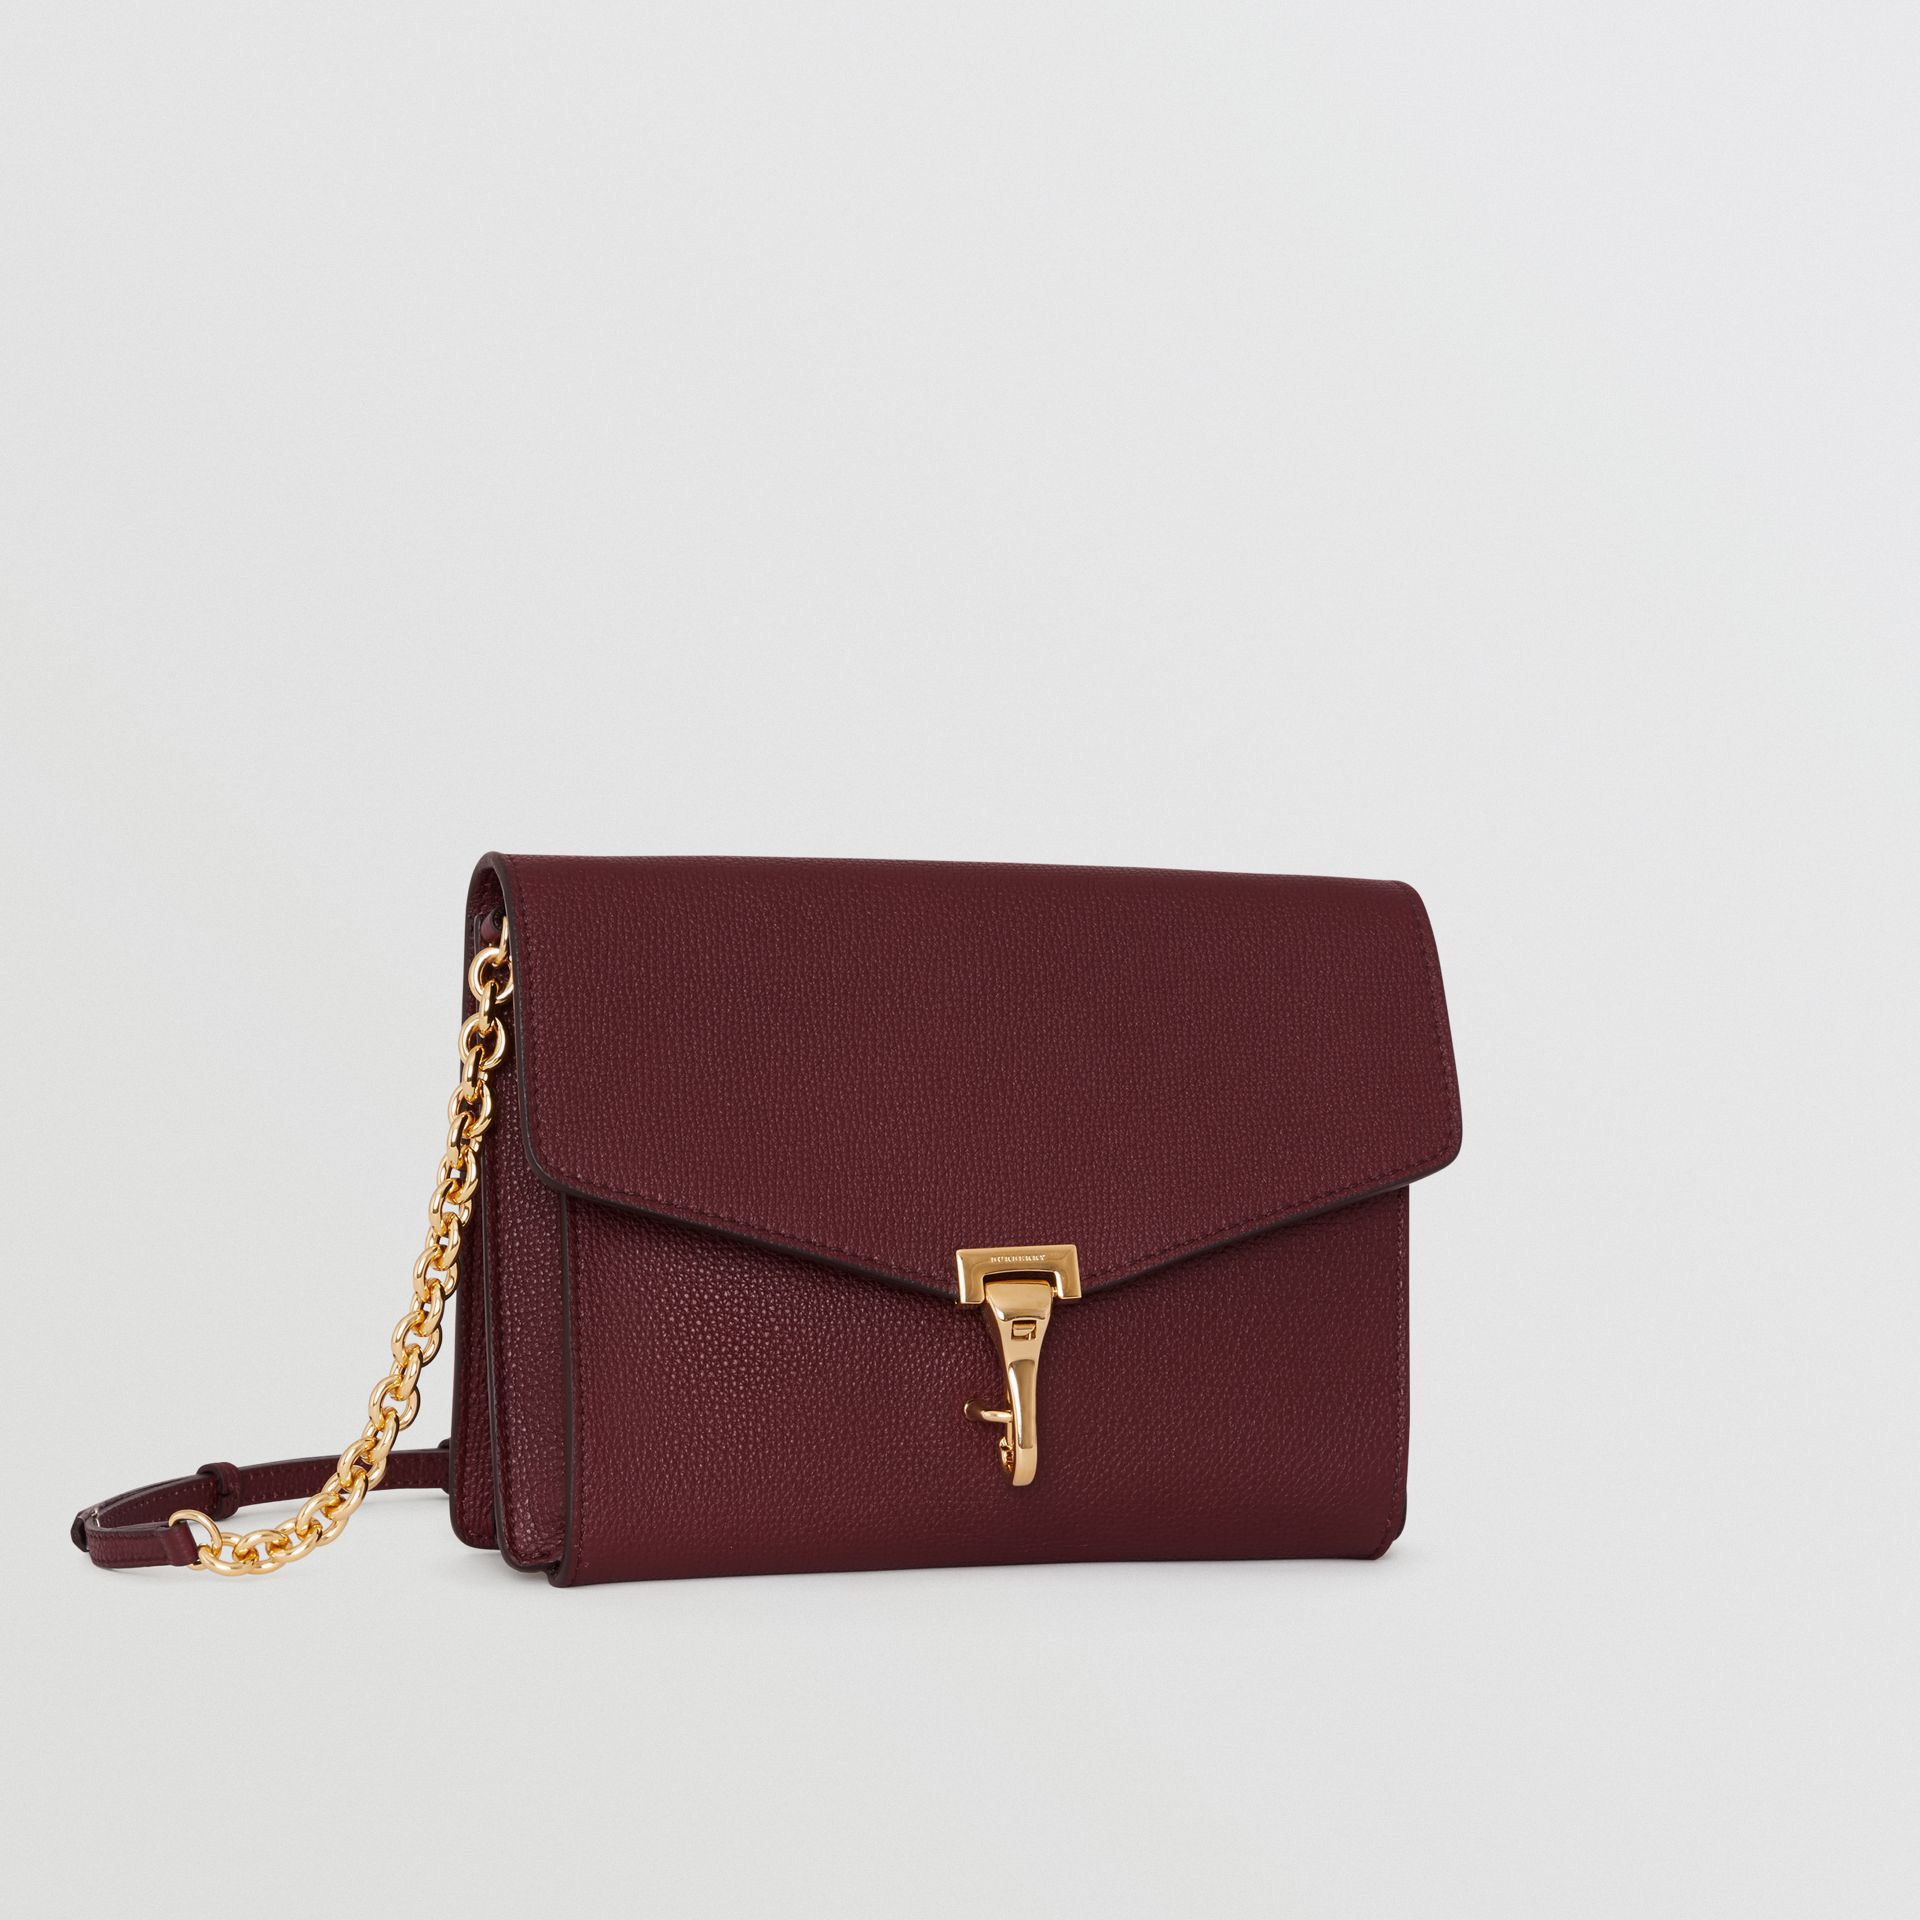 Small Leather Crossbody Bag in Mahogany Red - Women | Burberry Australia - gallery image 6